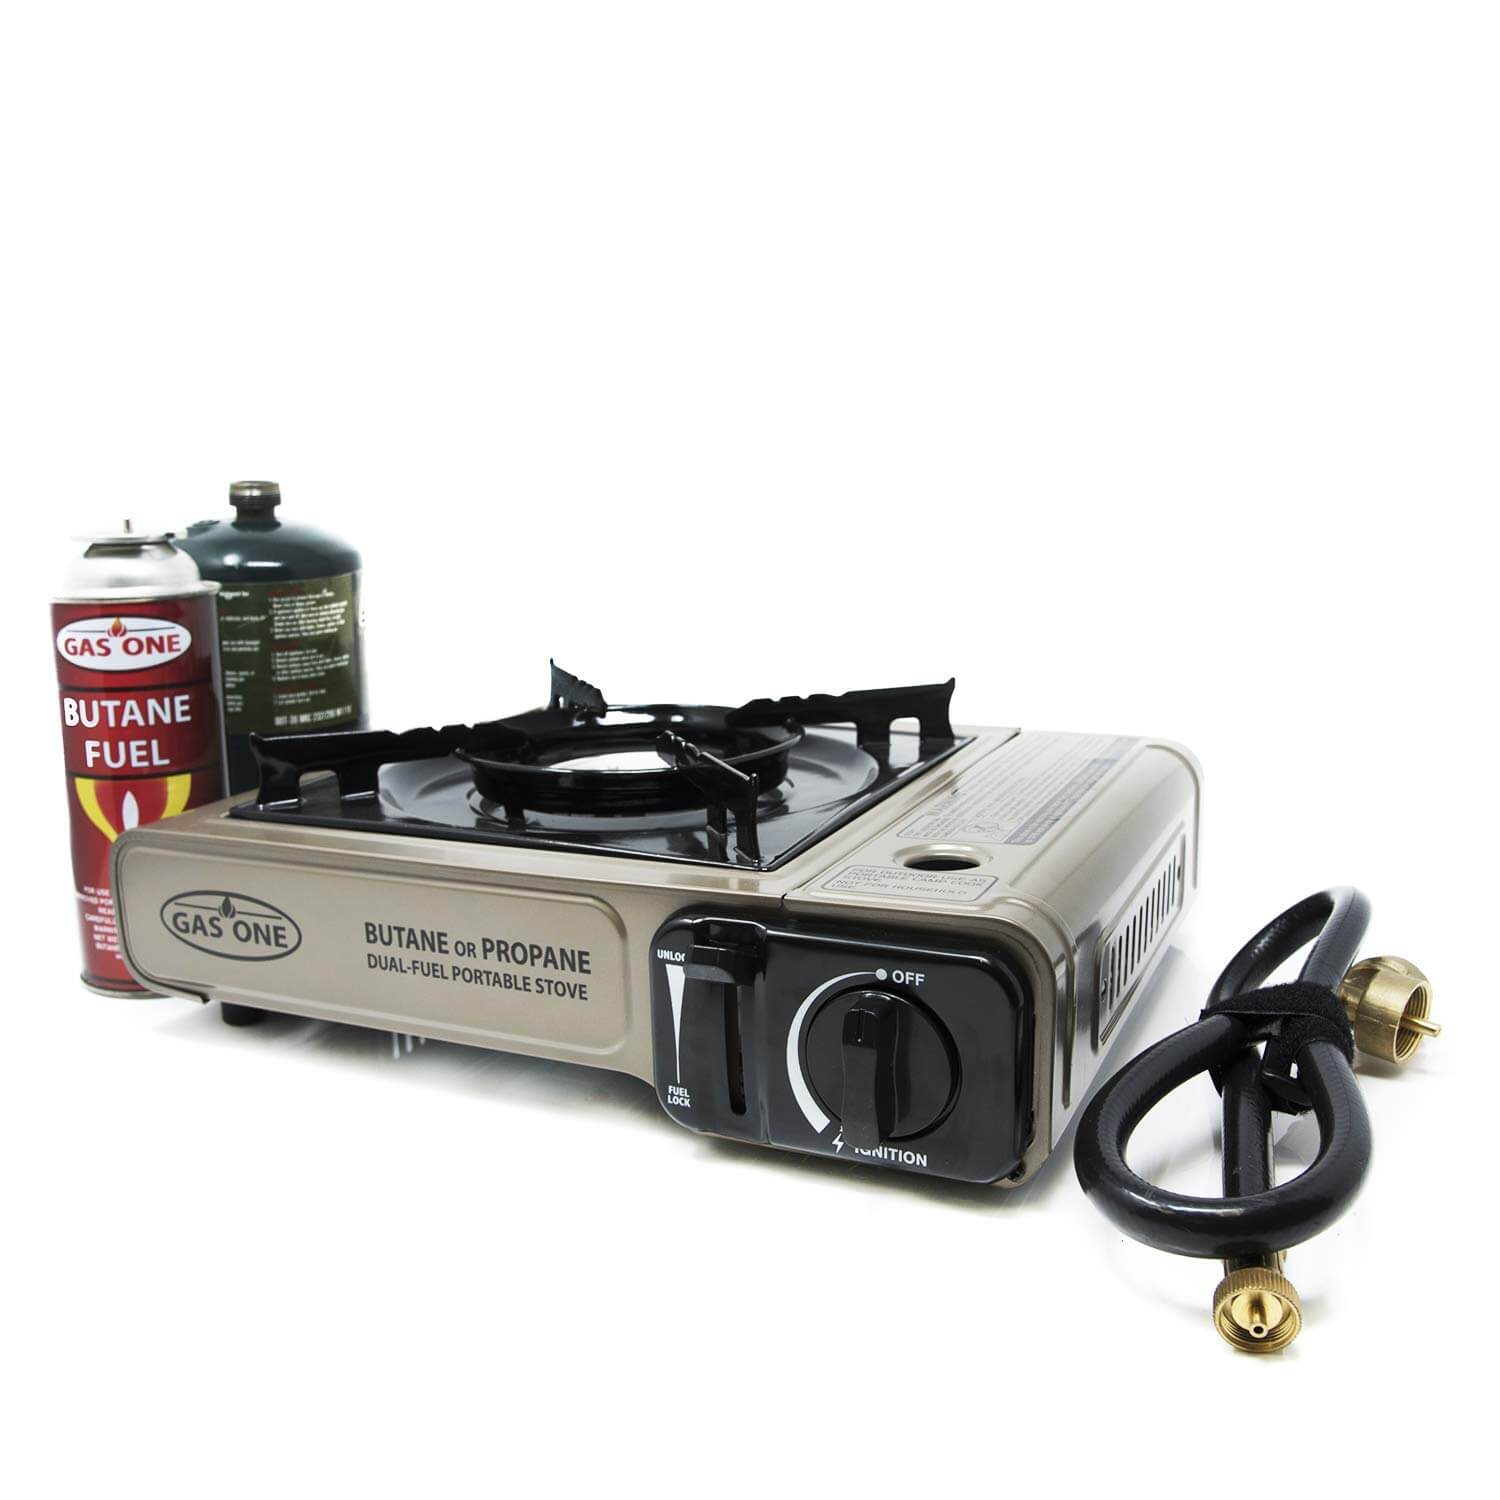 GAS ONE Dual Fuel Portable Camping Stove